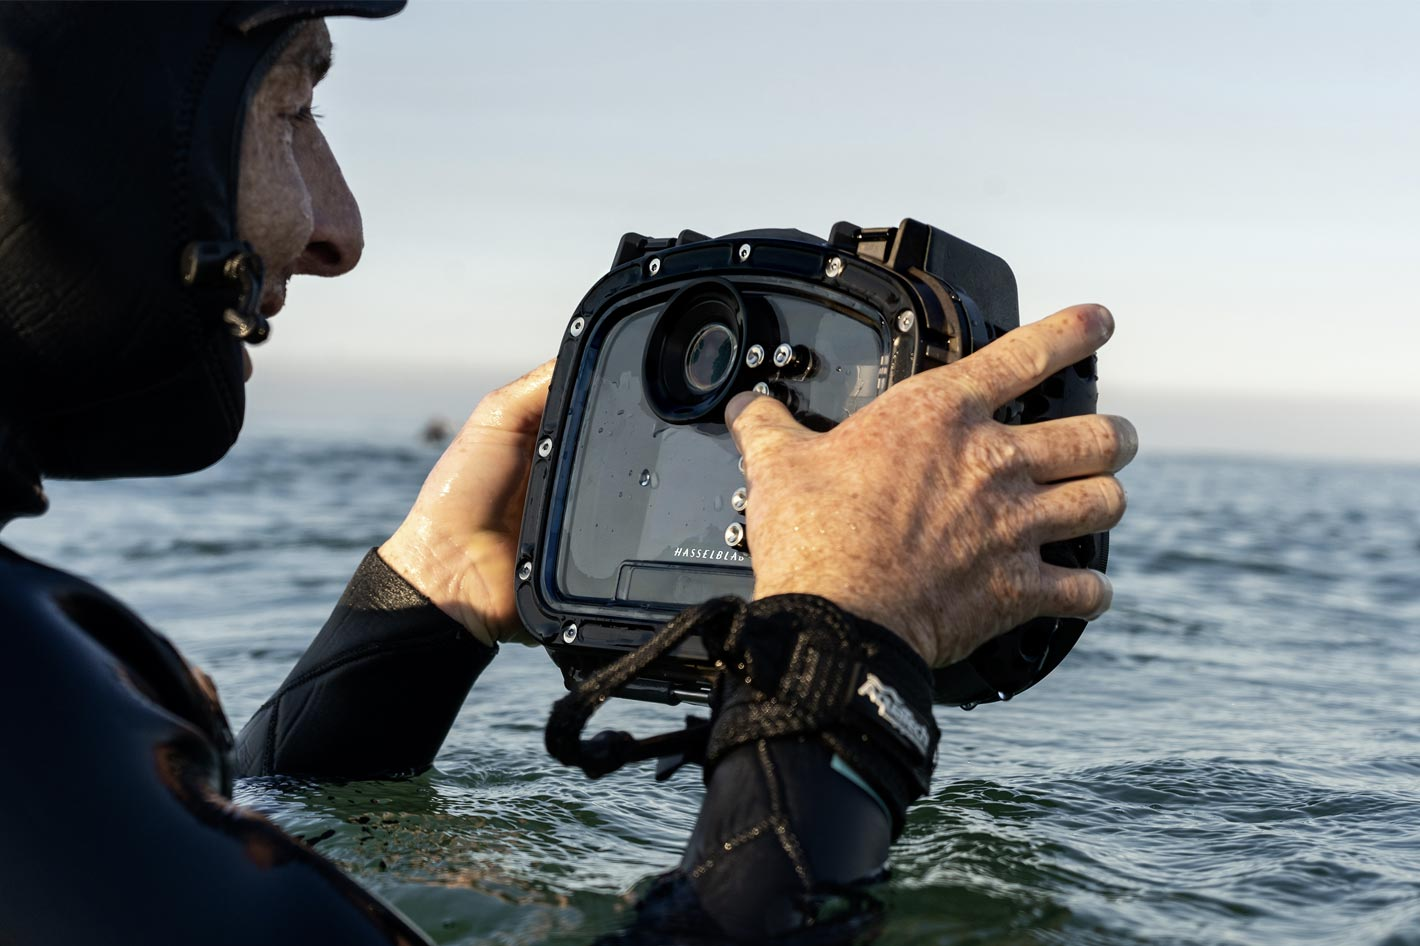 Hasselblad X1D II 50C gets an AquaTech underwater housing